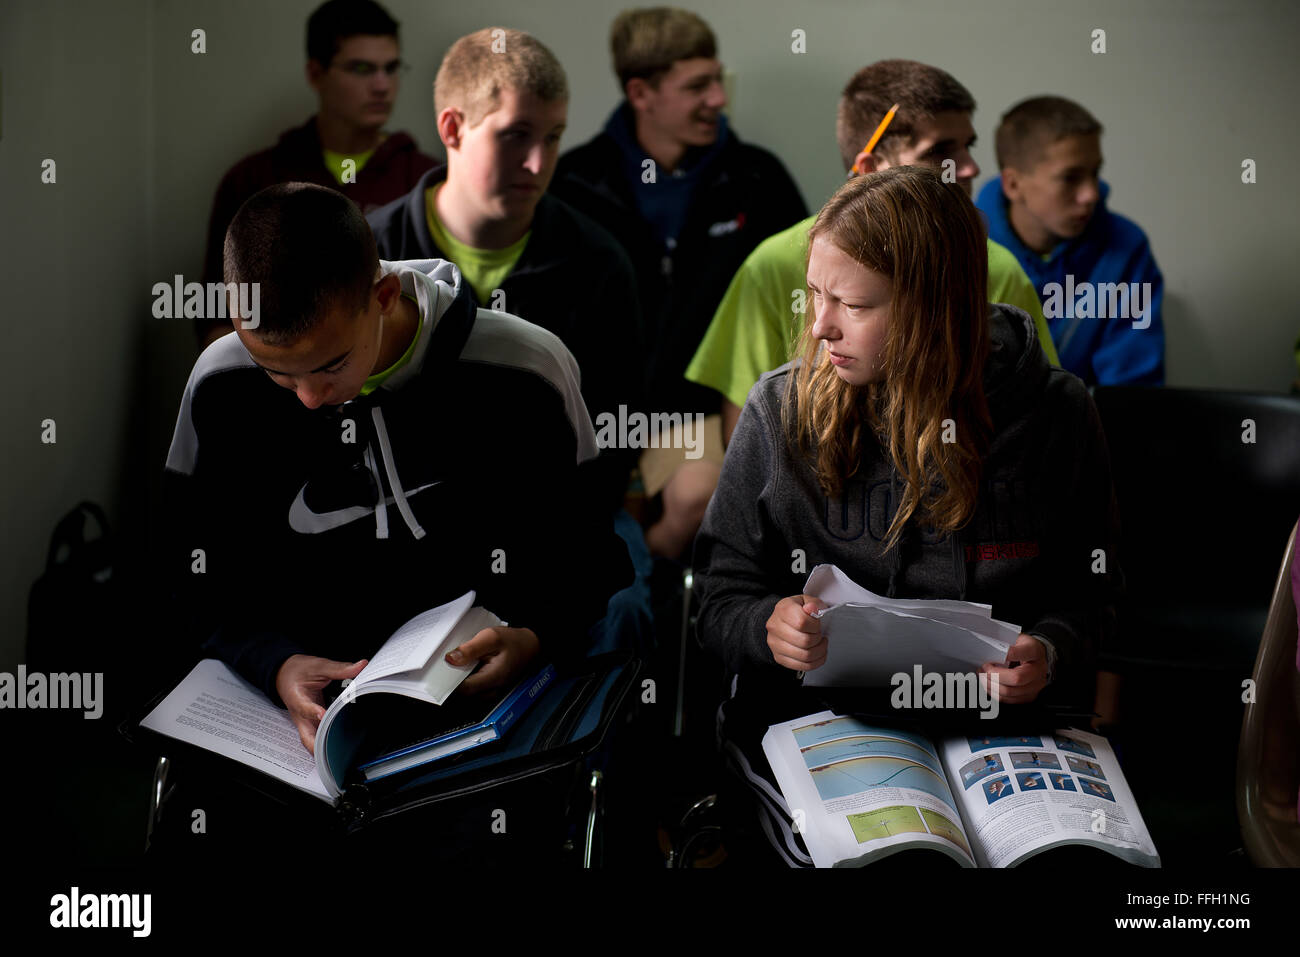 Civil Air Patrol cadets, Chris Cashman and Liz Bell, review their notes and study material before a ground school - Stock Image